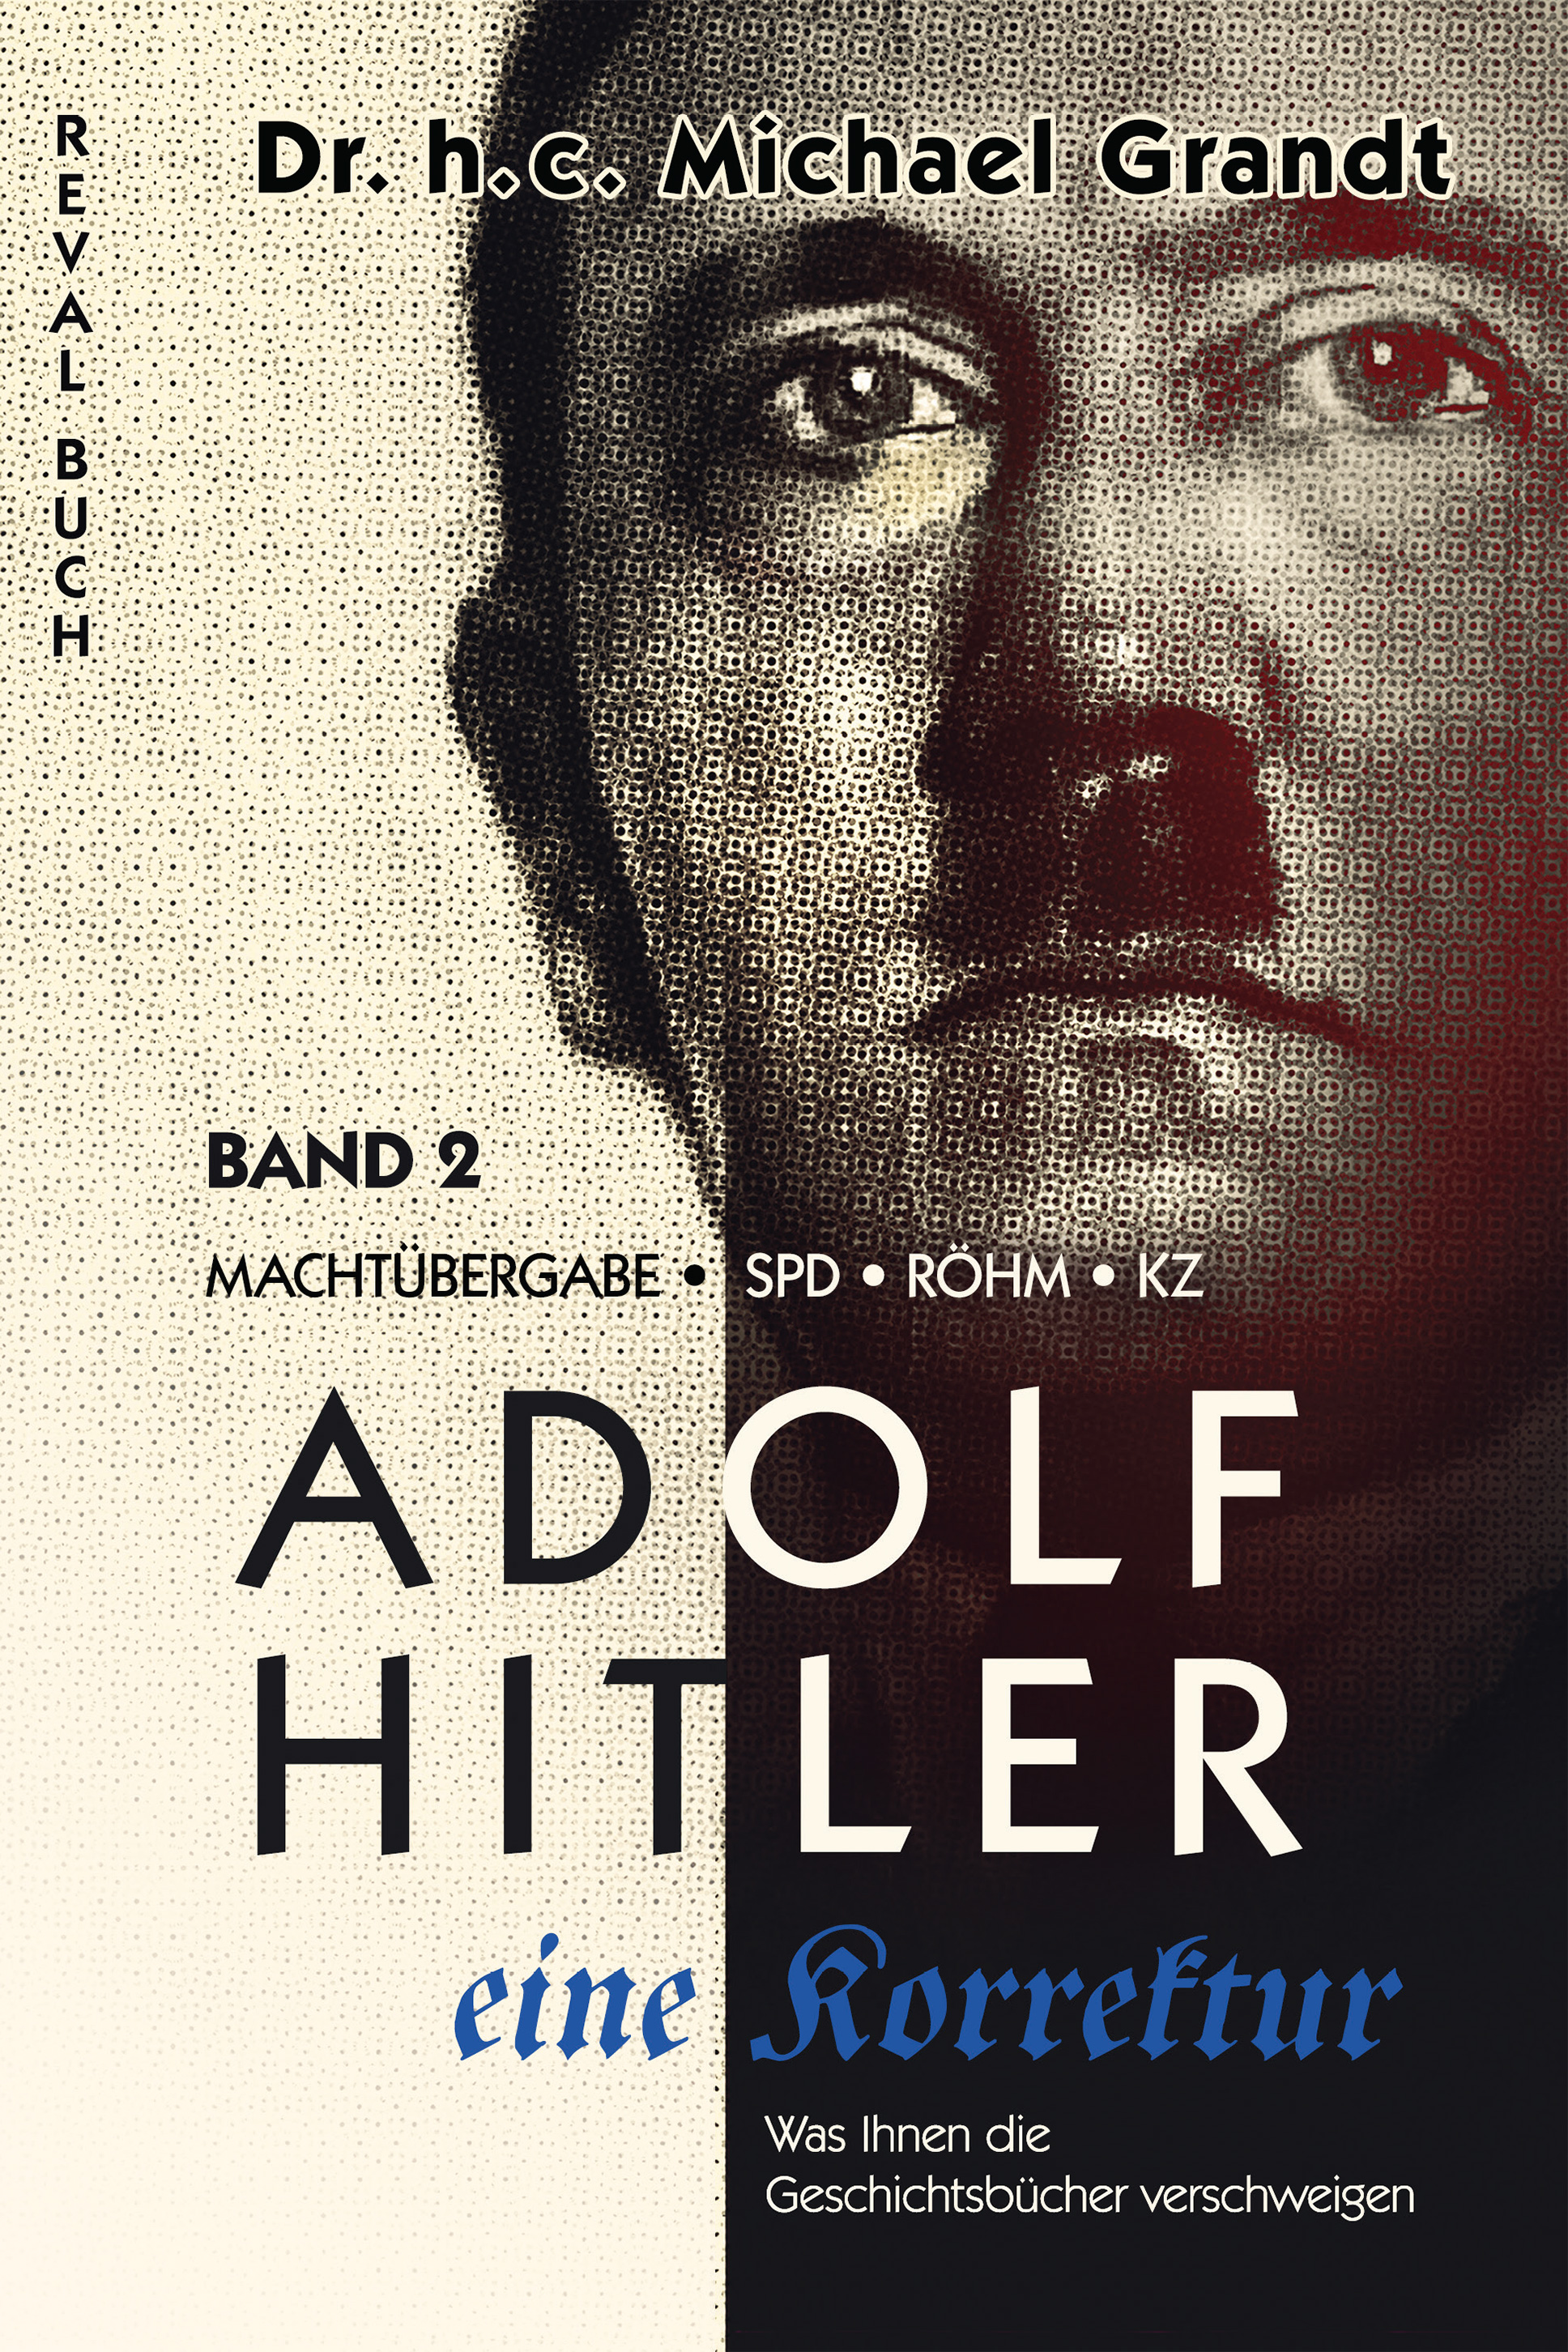 Adolf Band2 Reval Buch